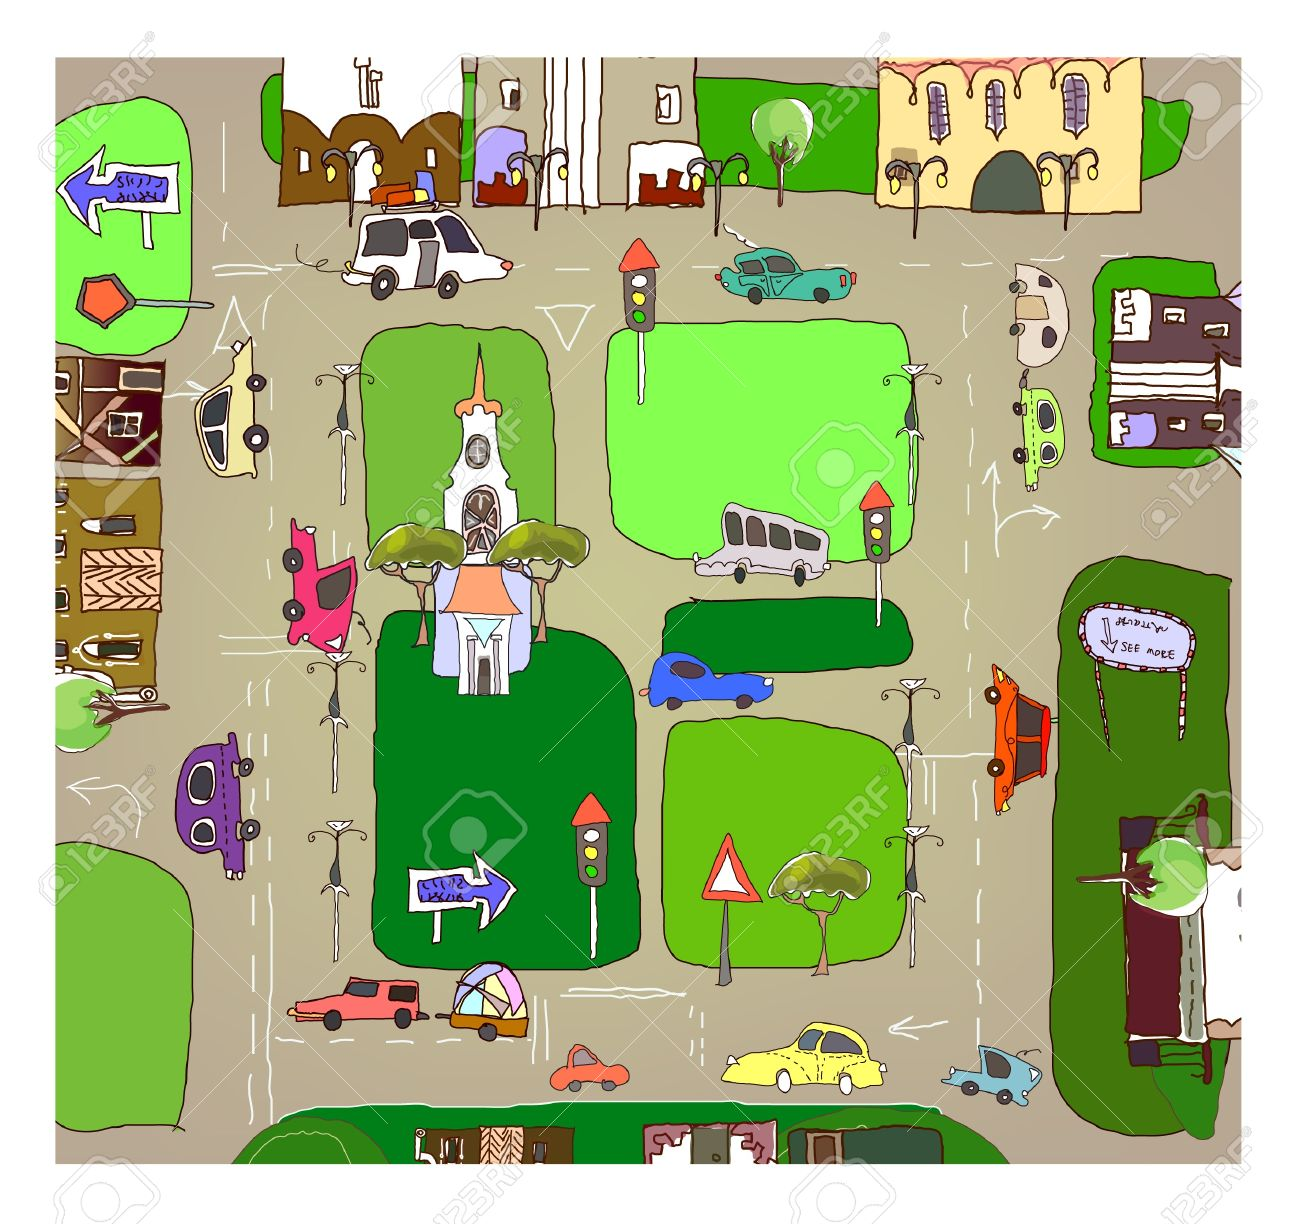 City Map Royalty Free Cliparts, Vectors, And Stock Illustration.